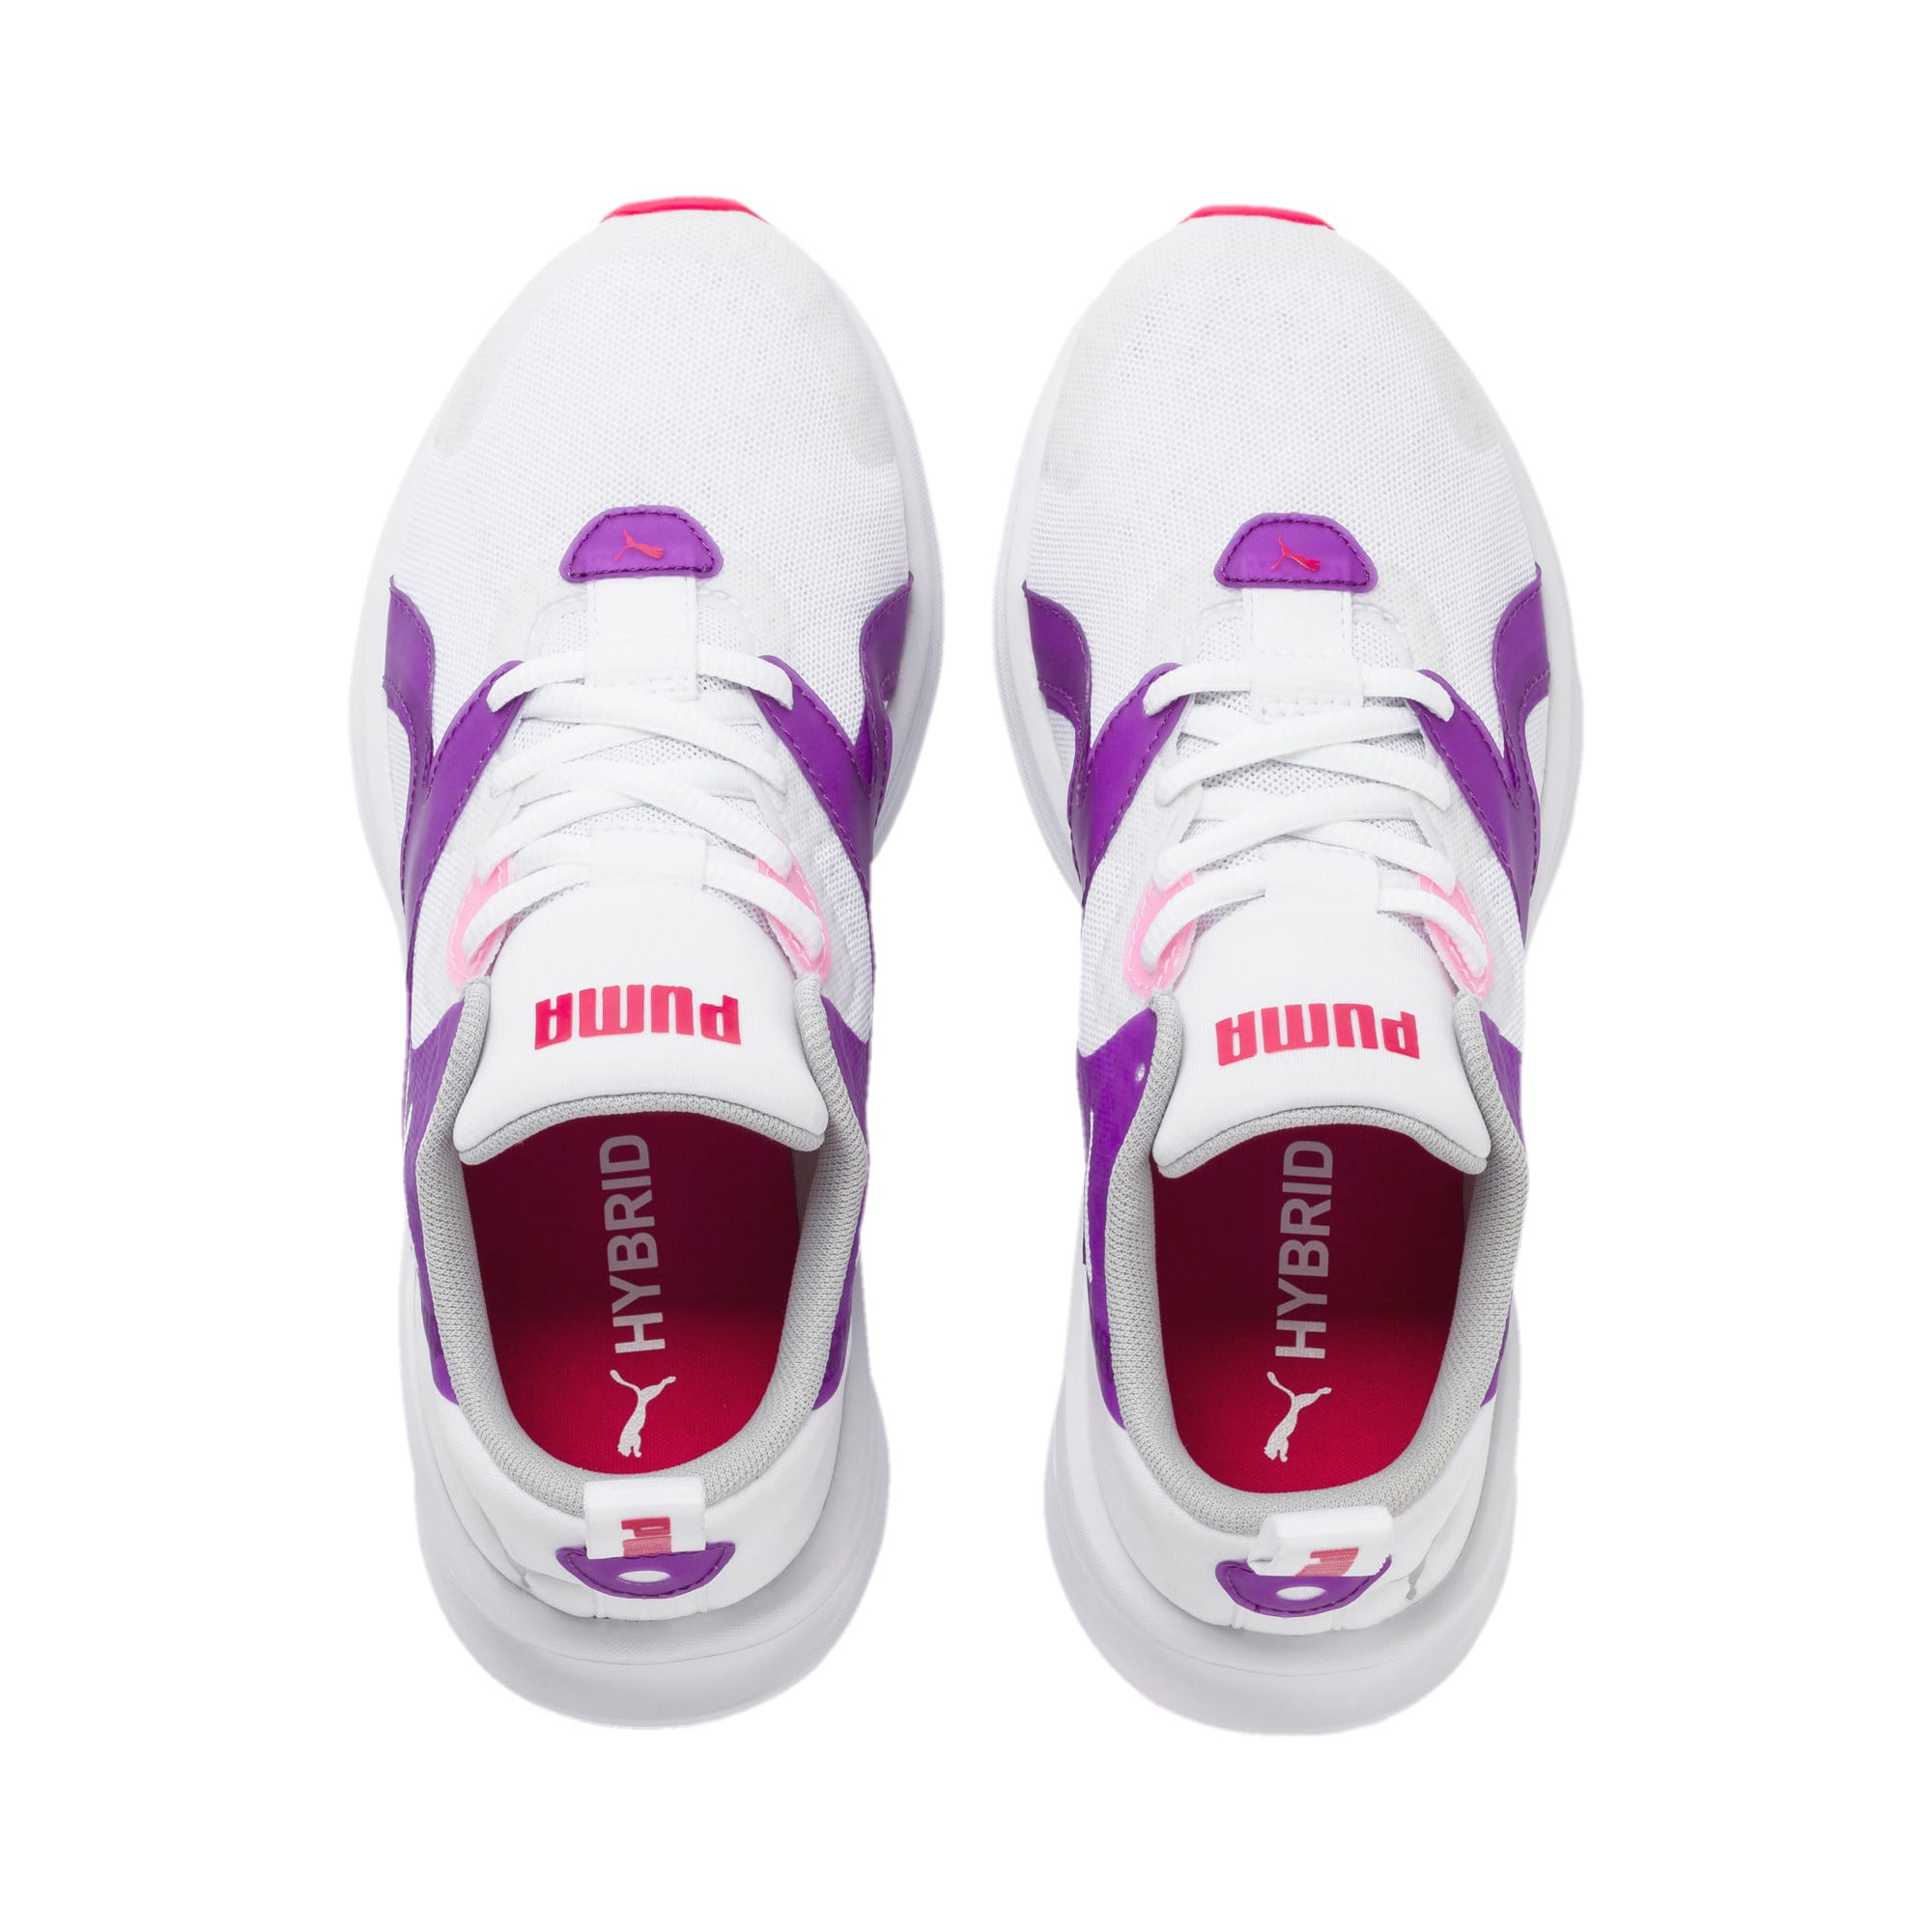 Thumbnail 6 of HYBRID Fuego Youth Trainers, Puma White-Royal Lilac, medium-IND